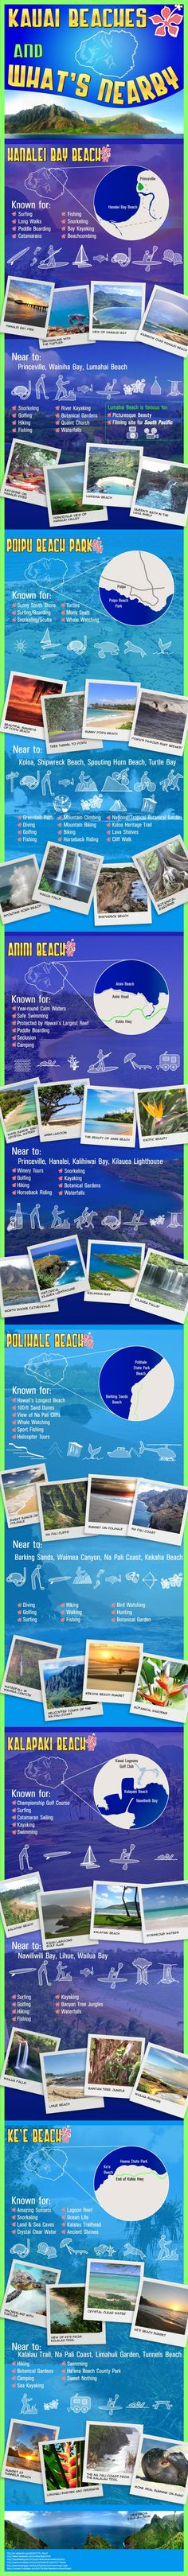 Kauai Beaches and What's Nearby Infographic - Pictures Worth 1000 Words from HomeAway Travel Ideas